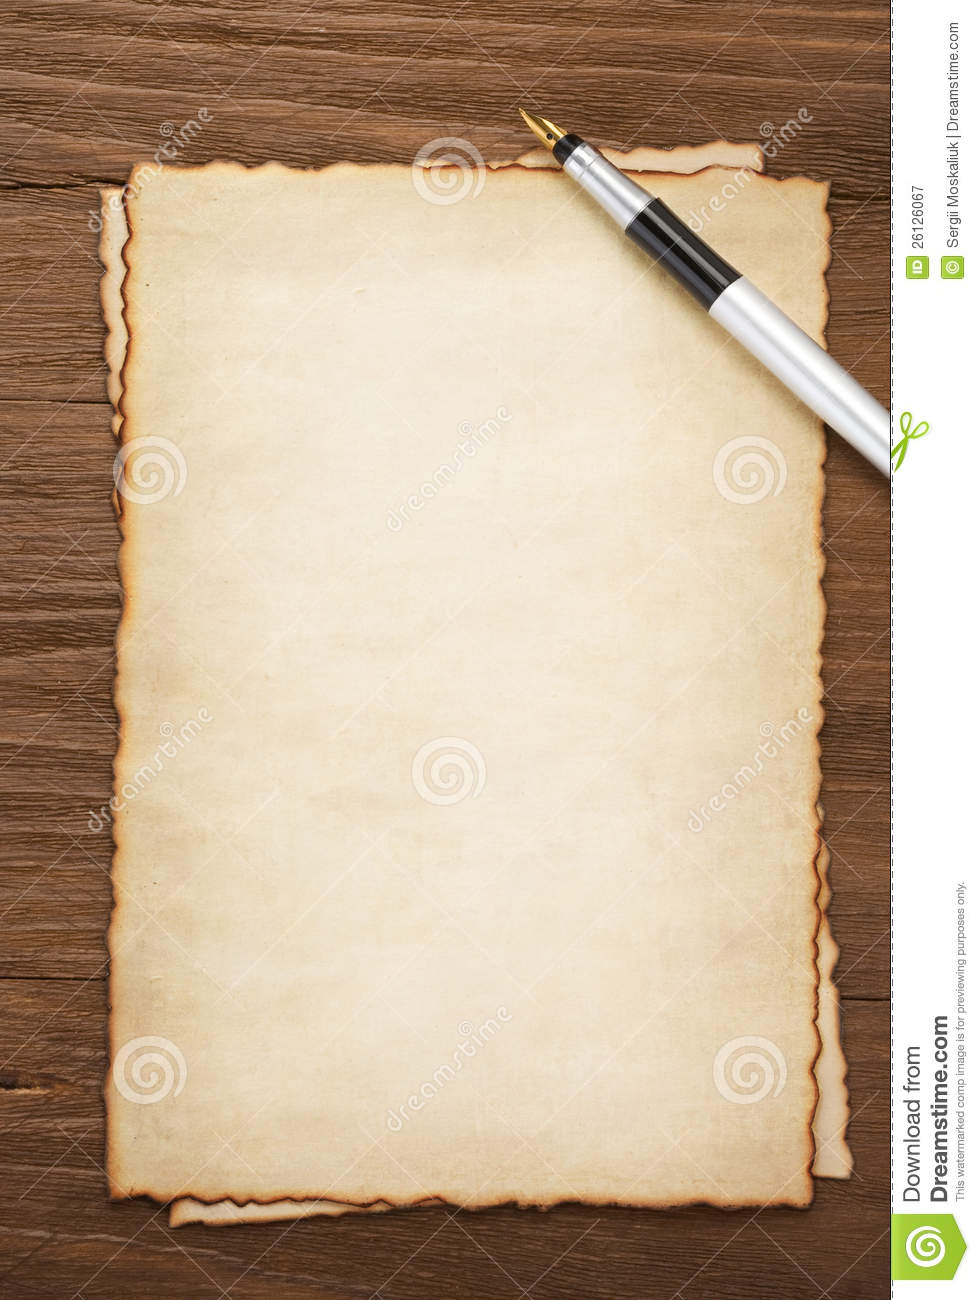 Ink Pen On Parchment Background Royalty Free Stock